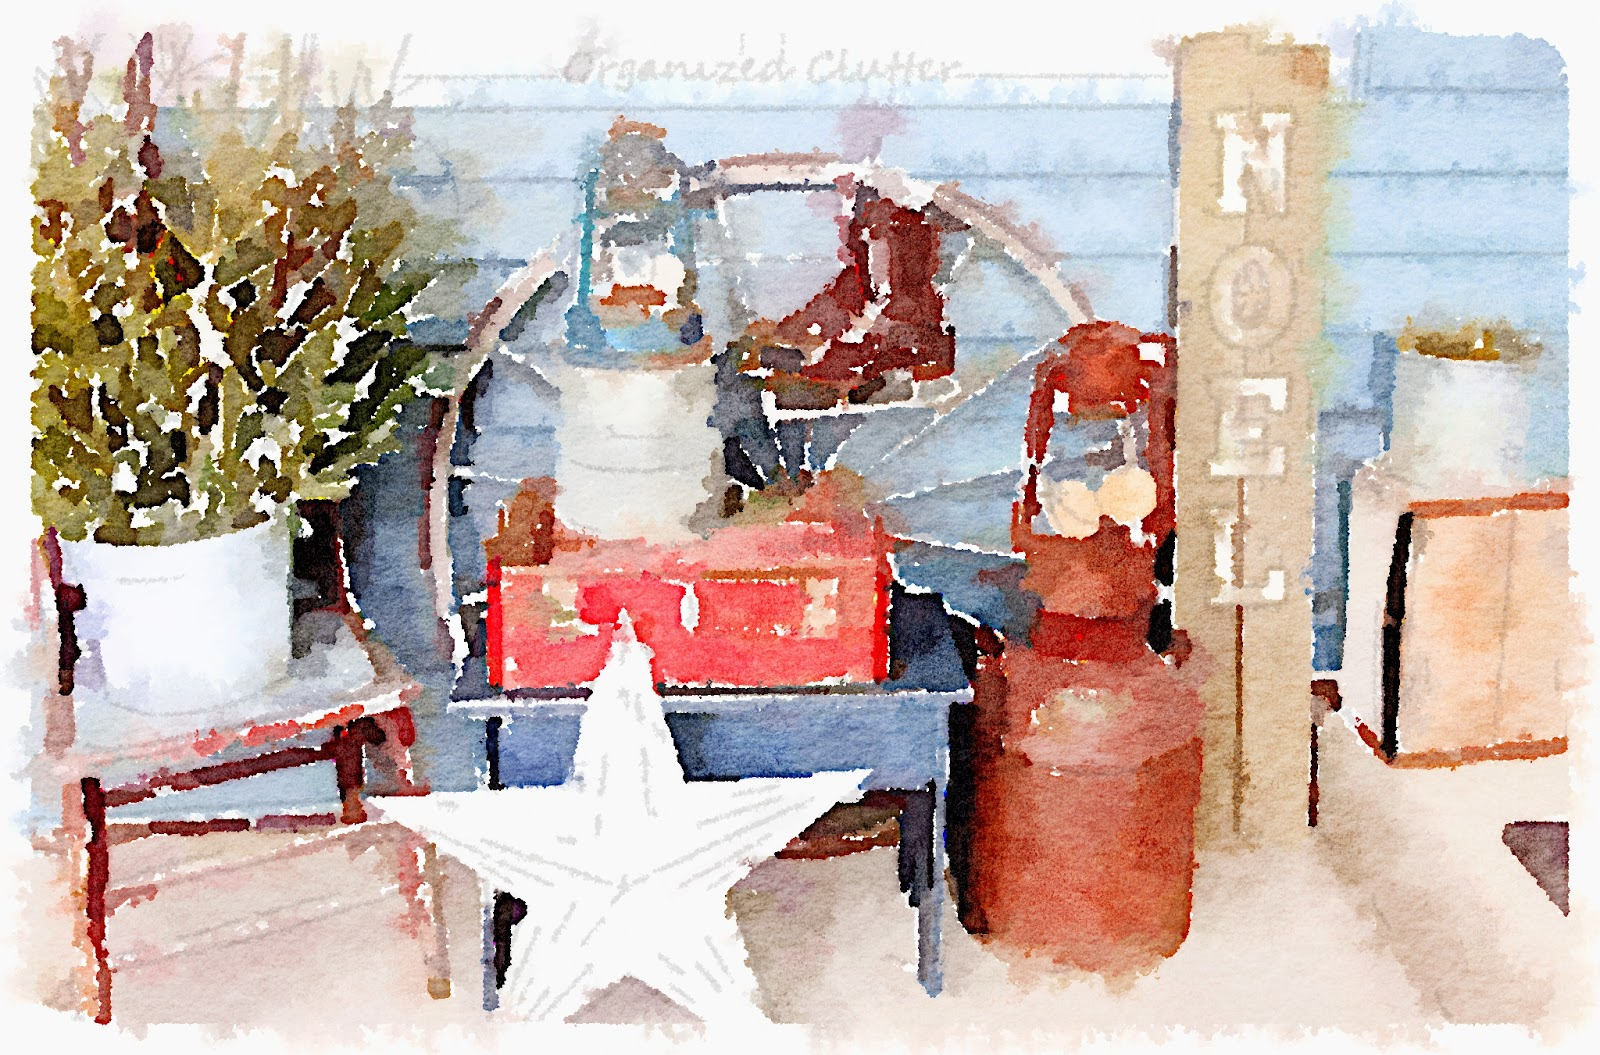 Waterlogue Outdoor Rustic Christmas Vignette www.organizedclutterqueen.blogspot.com